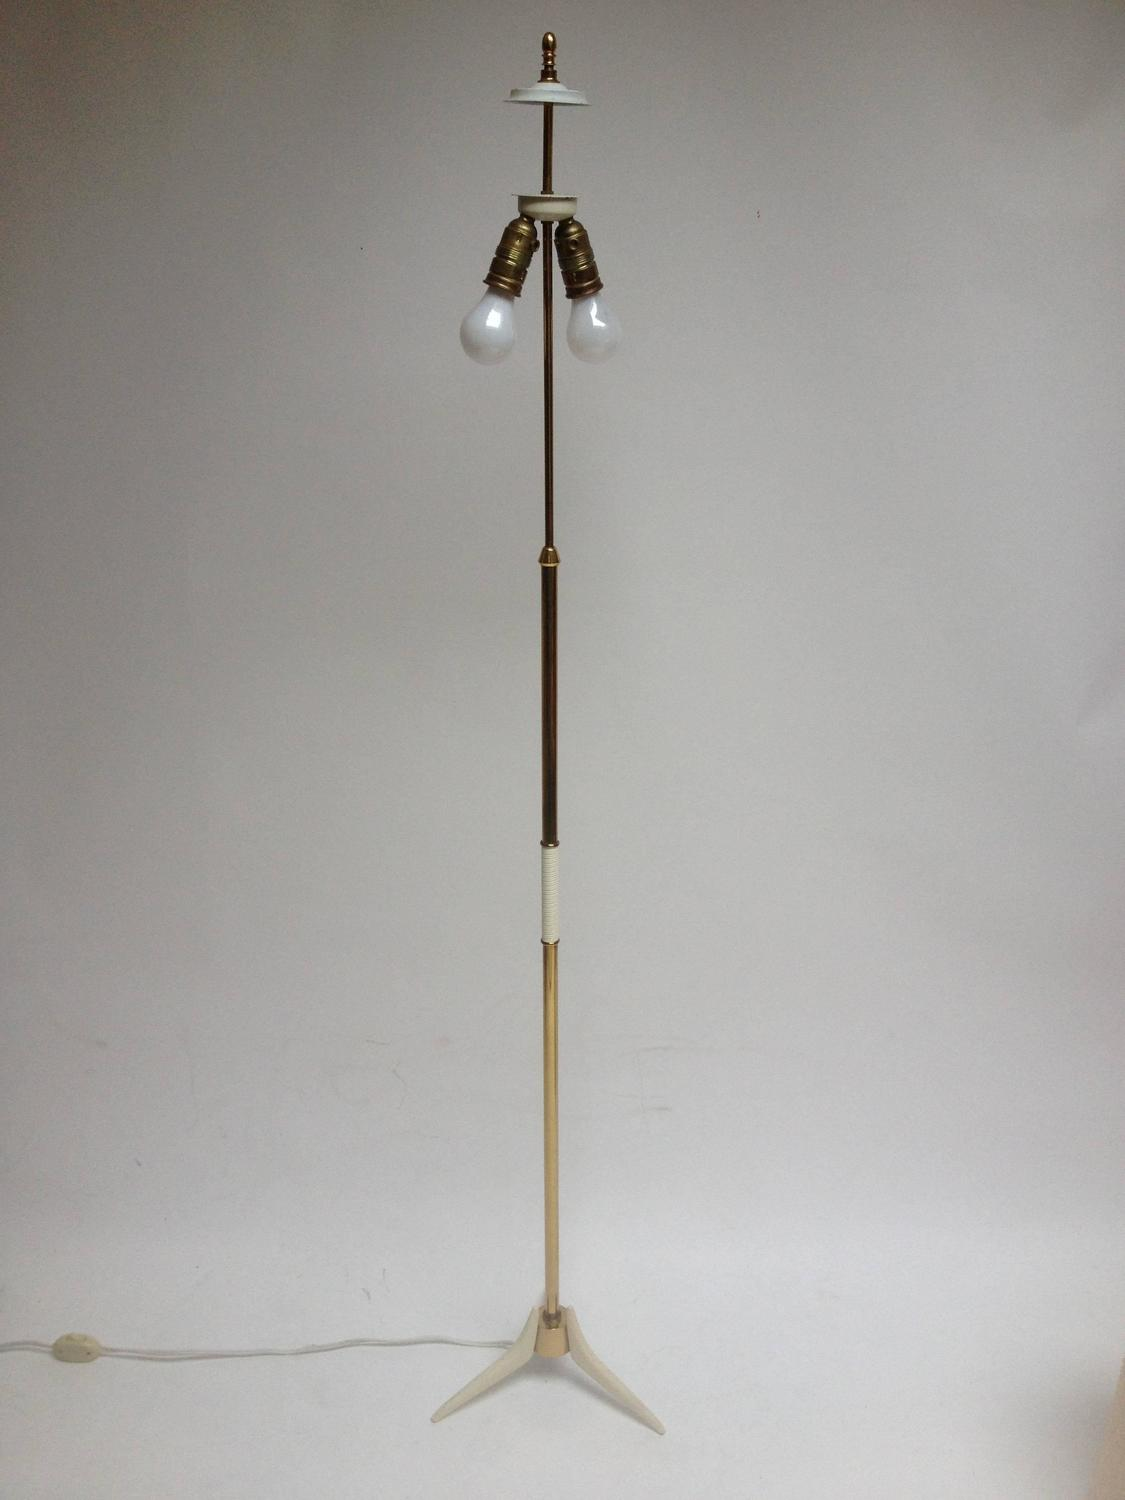 unique mid century modern brass floor lamp for sale at 1stdibs. Black Bedroom Furniture Sets. Home Design Ideas